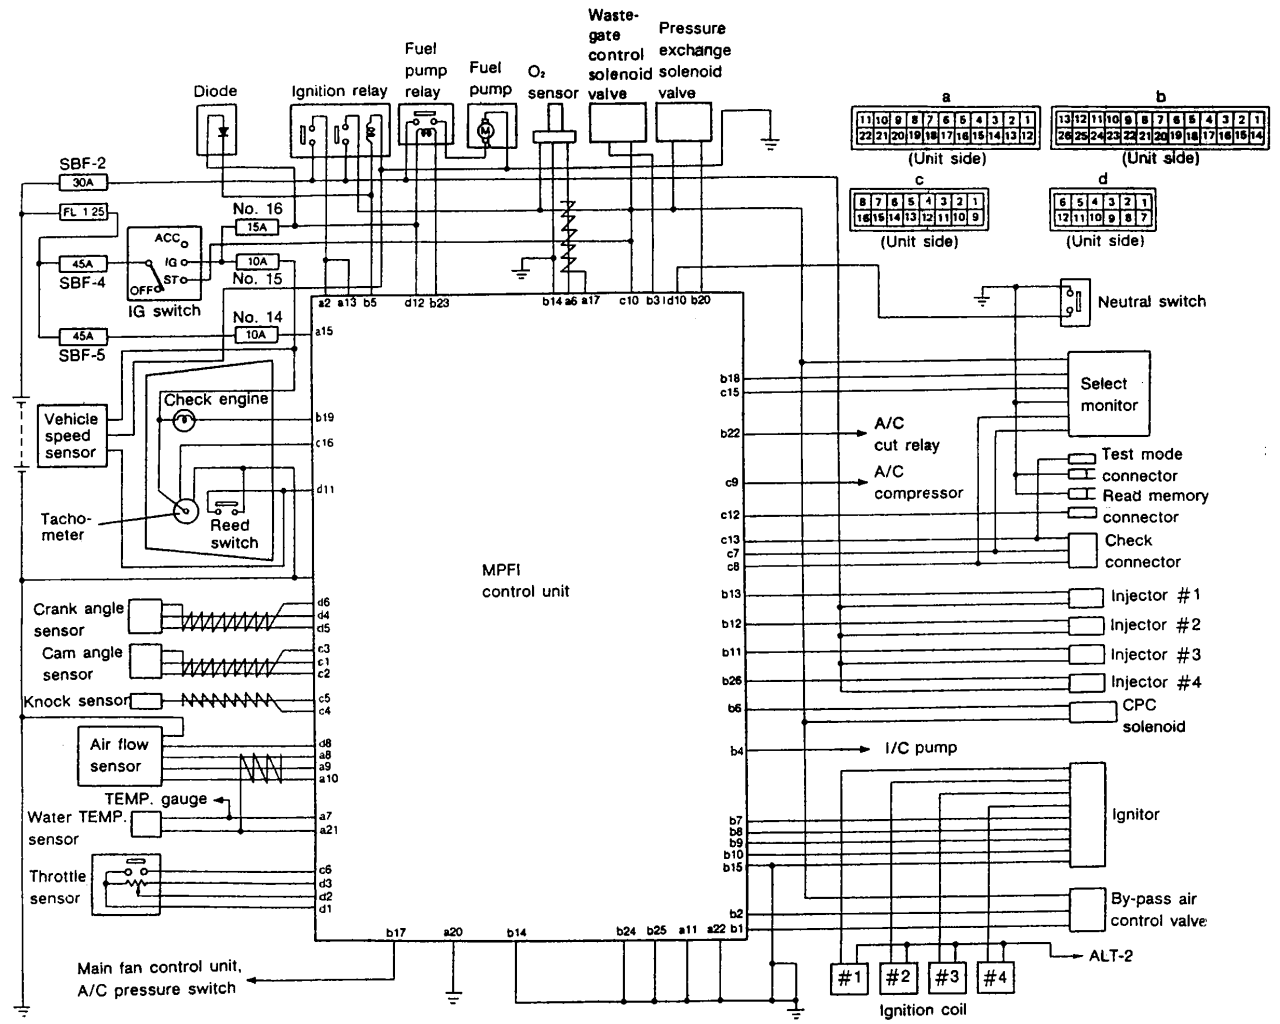 1998 Subaru Impreza 5 Speed Wiring Diagram Will Be 2013 Vehicle 1991 1996 Rusefi Rh Com 2005